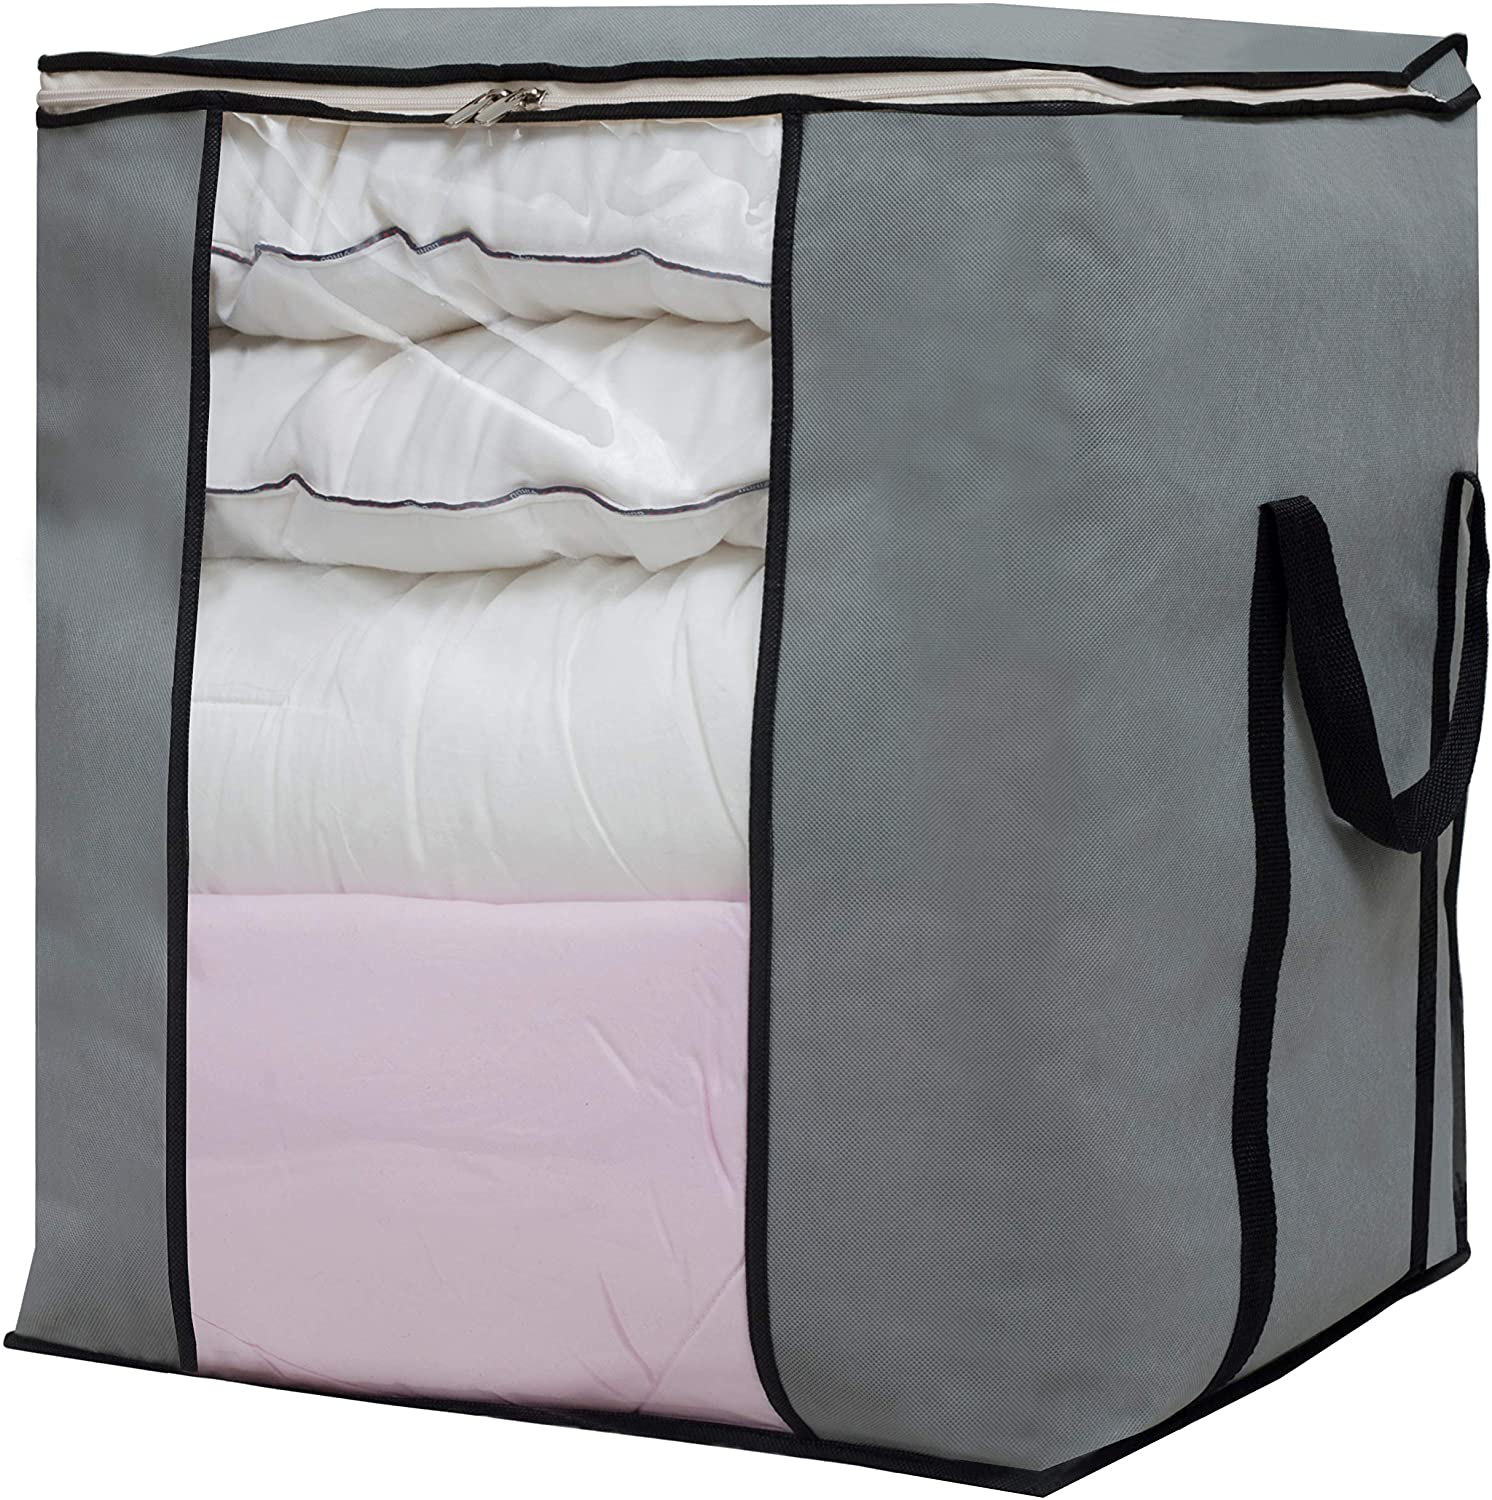 Large Foldable Storage Bag Organizer Clothes Storage Container for Blanket Comforter Clothing Bedding with Durable Handles